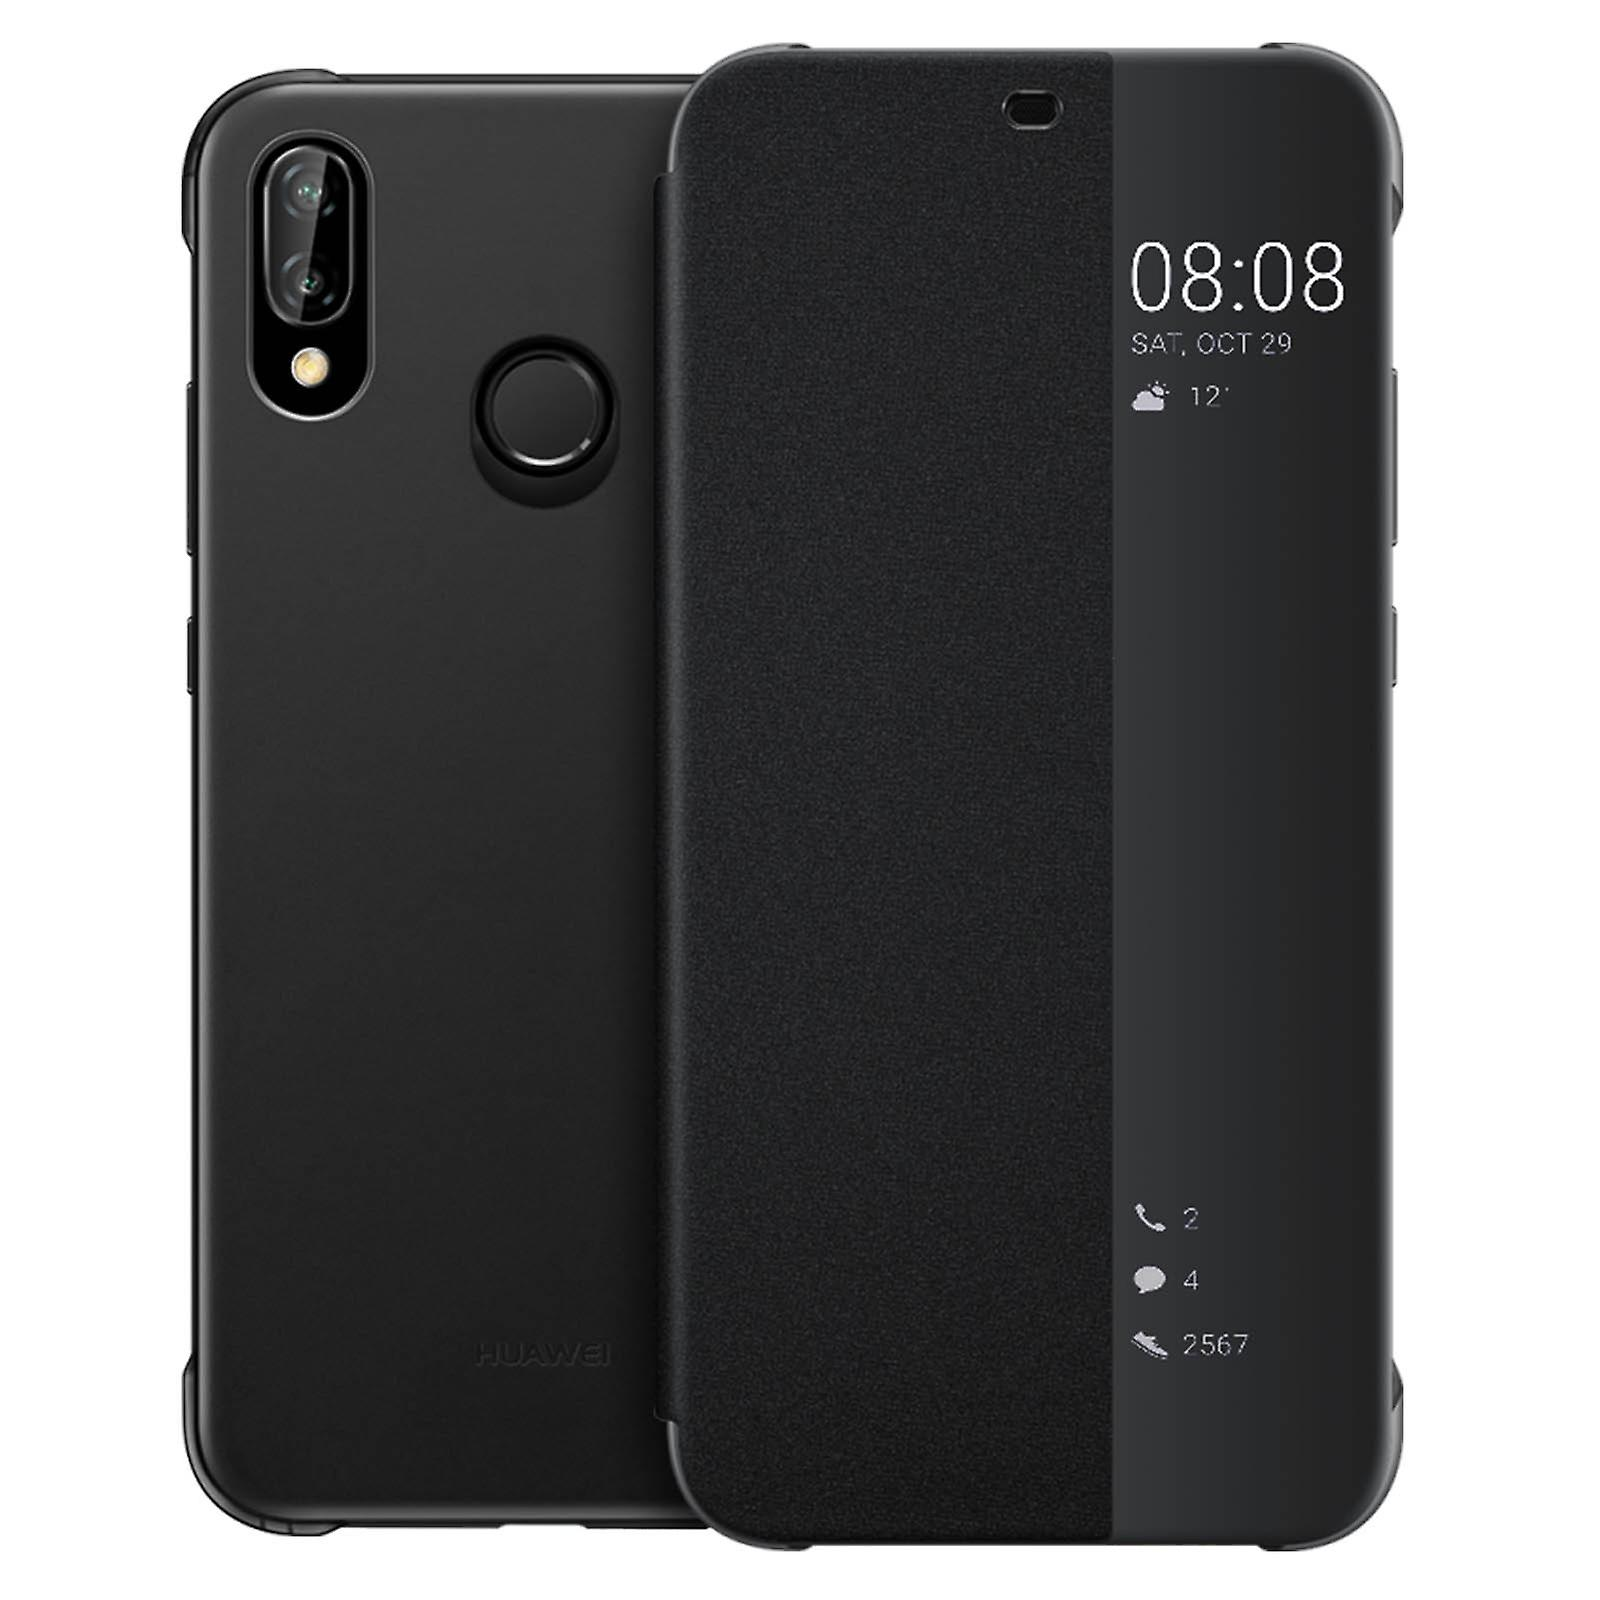 big sale bf65a d608c Official Huawei Smart View flip case for Huawei P20 Lite - Black